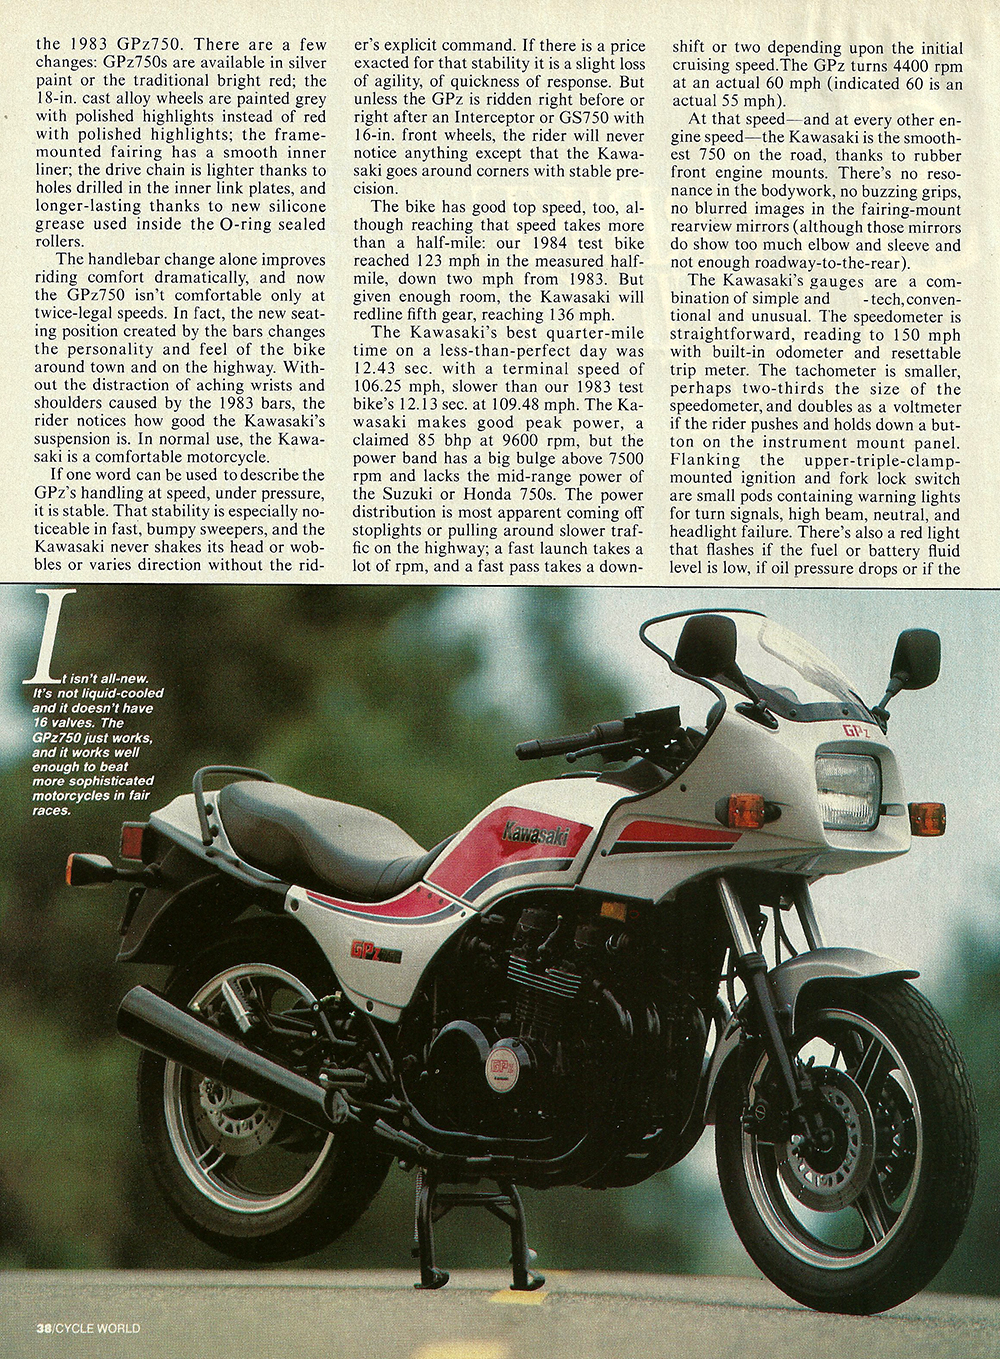 1984 Kawasaki GPz750 road test 03.jpg